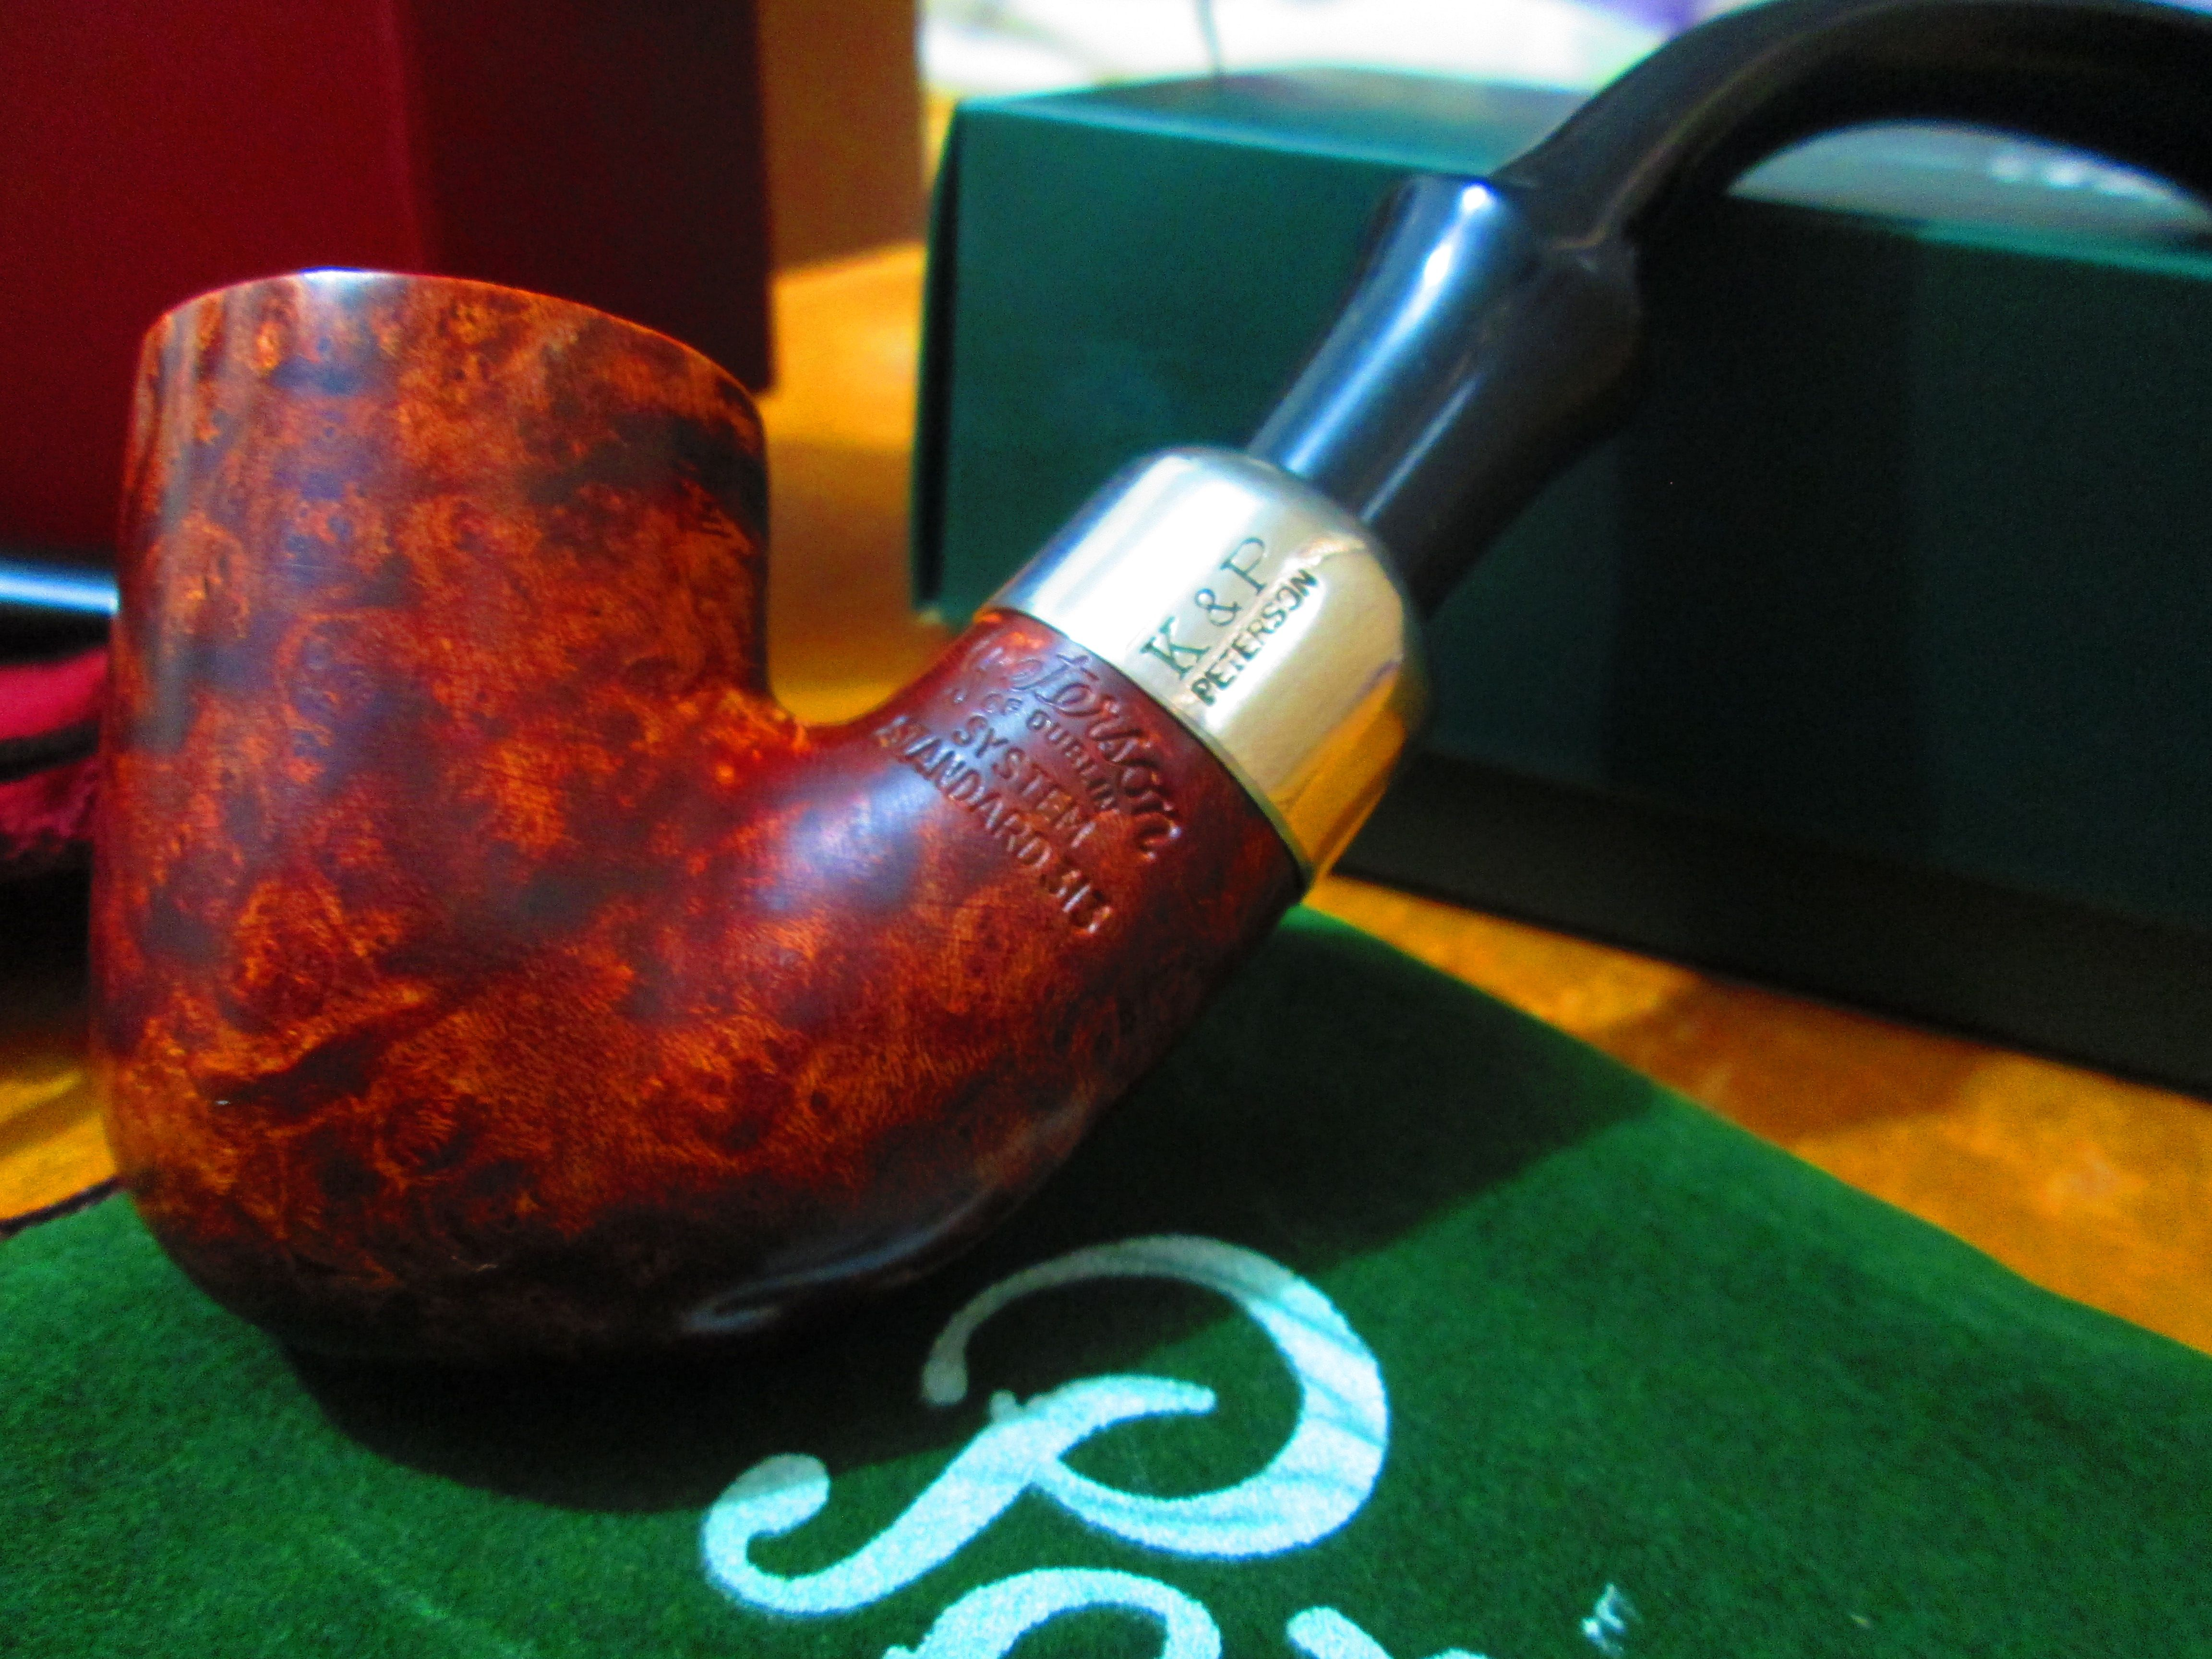 Peterson System Standard 313, private collection.